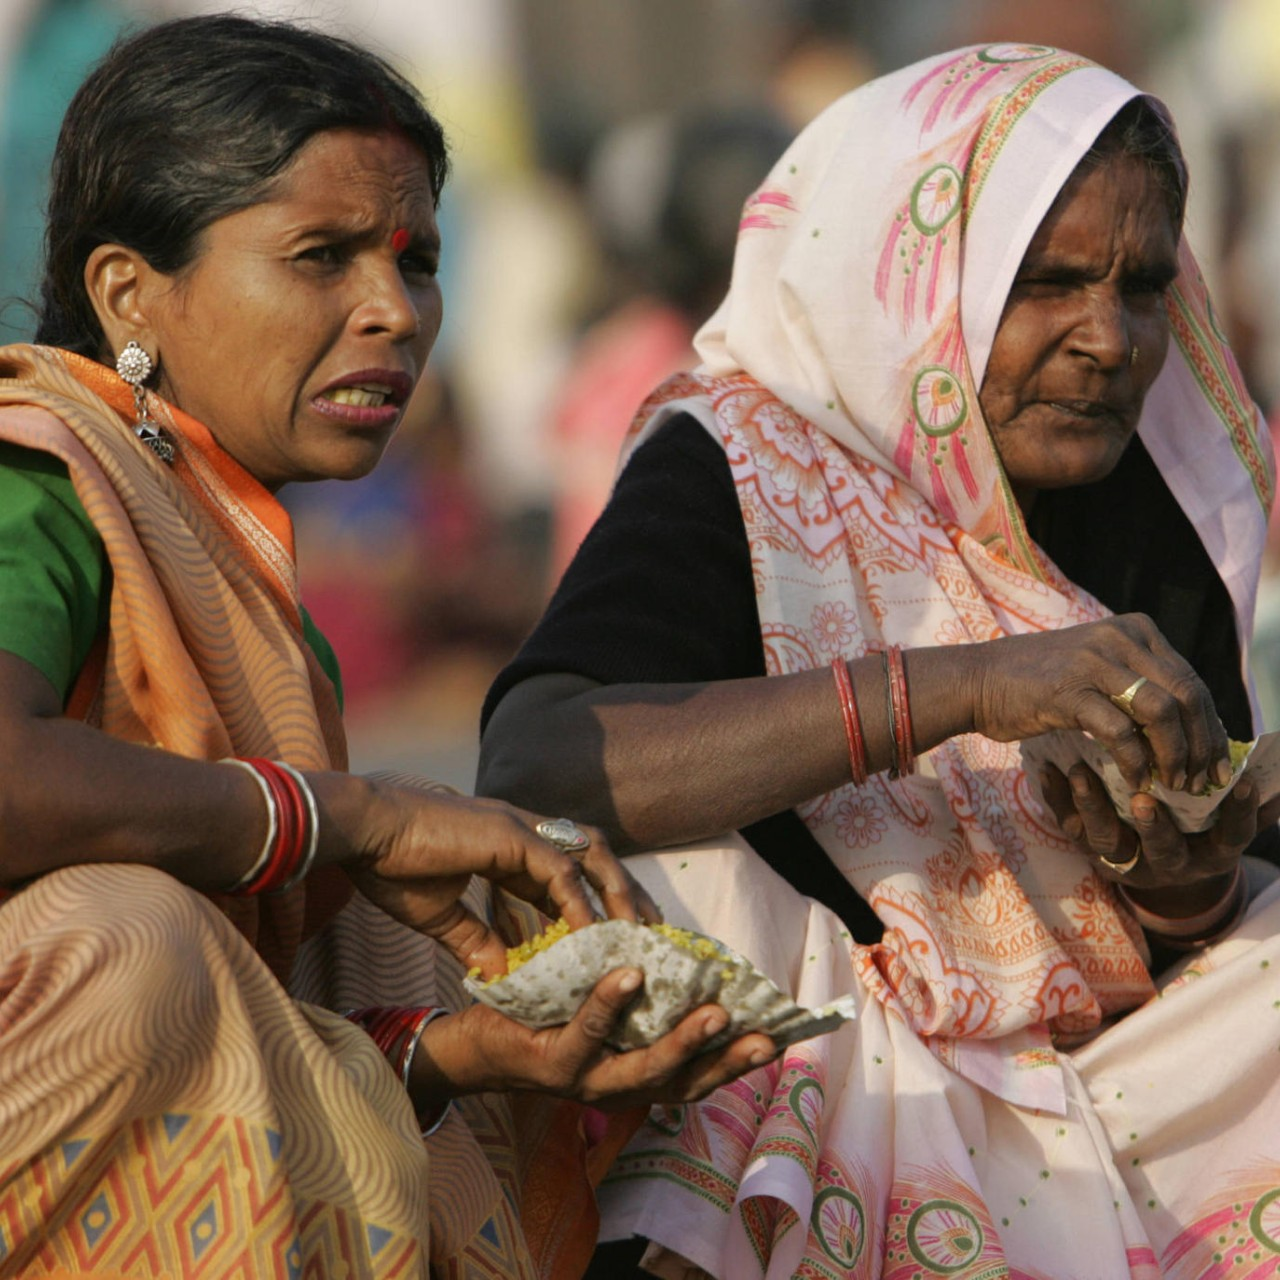 In India, caste system ensures you are what you eat | South China